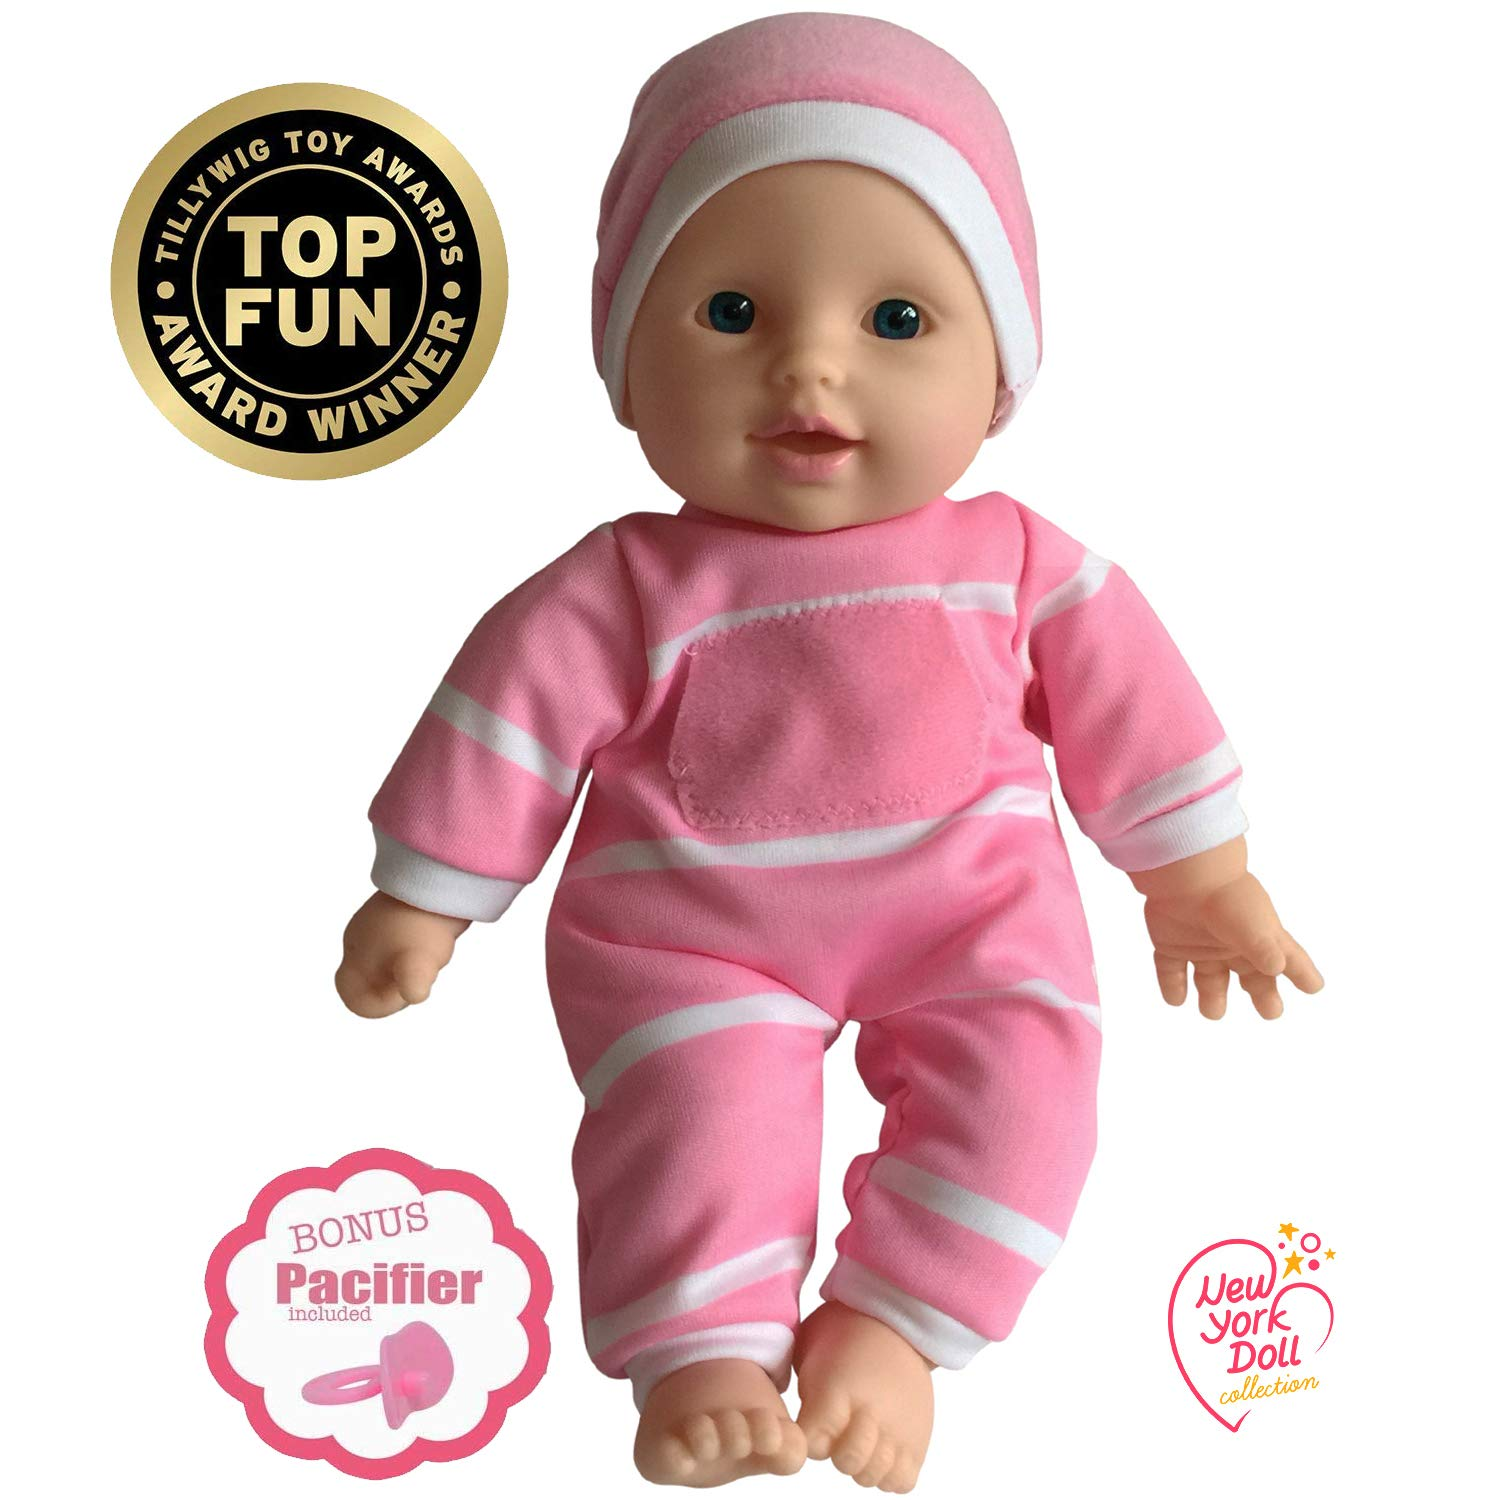 Top 15 Best Baby Dolls for 1 Year Olds (2020 Updated) 2